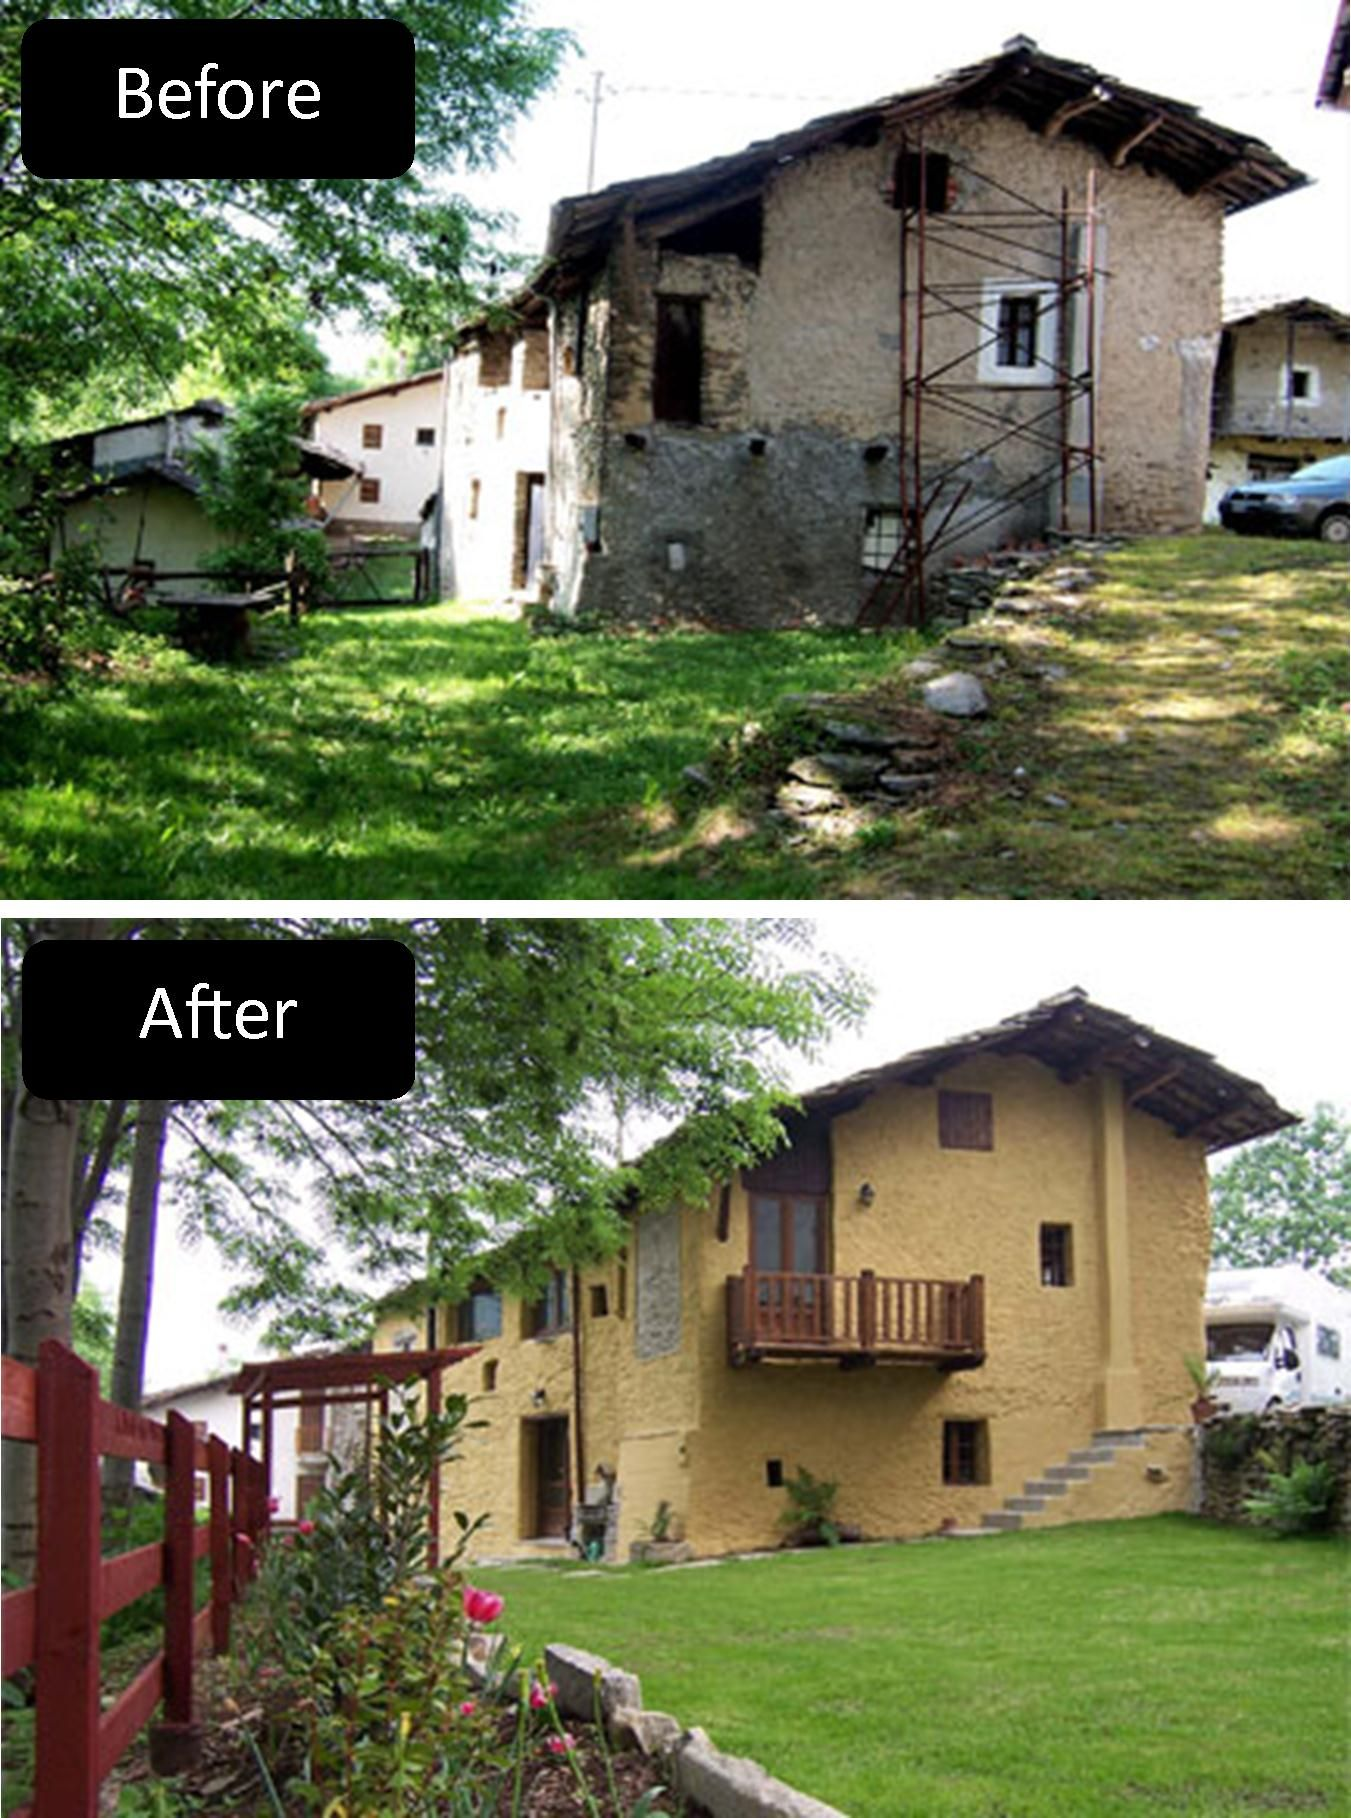 Bedroom Renovation Before And After renovation in italy. #italy #home #renovation | travel | pinterest